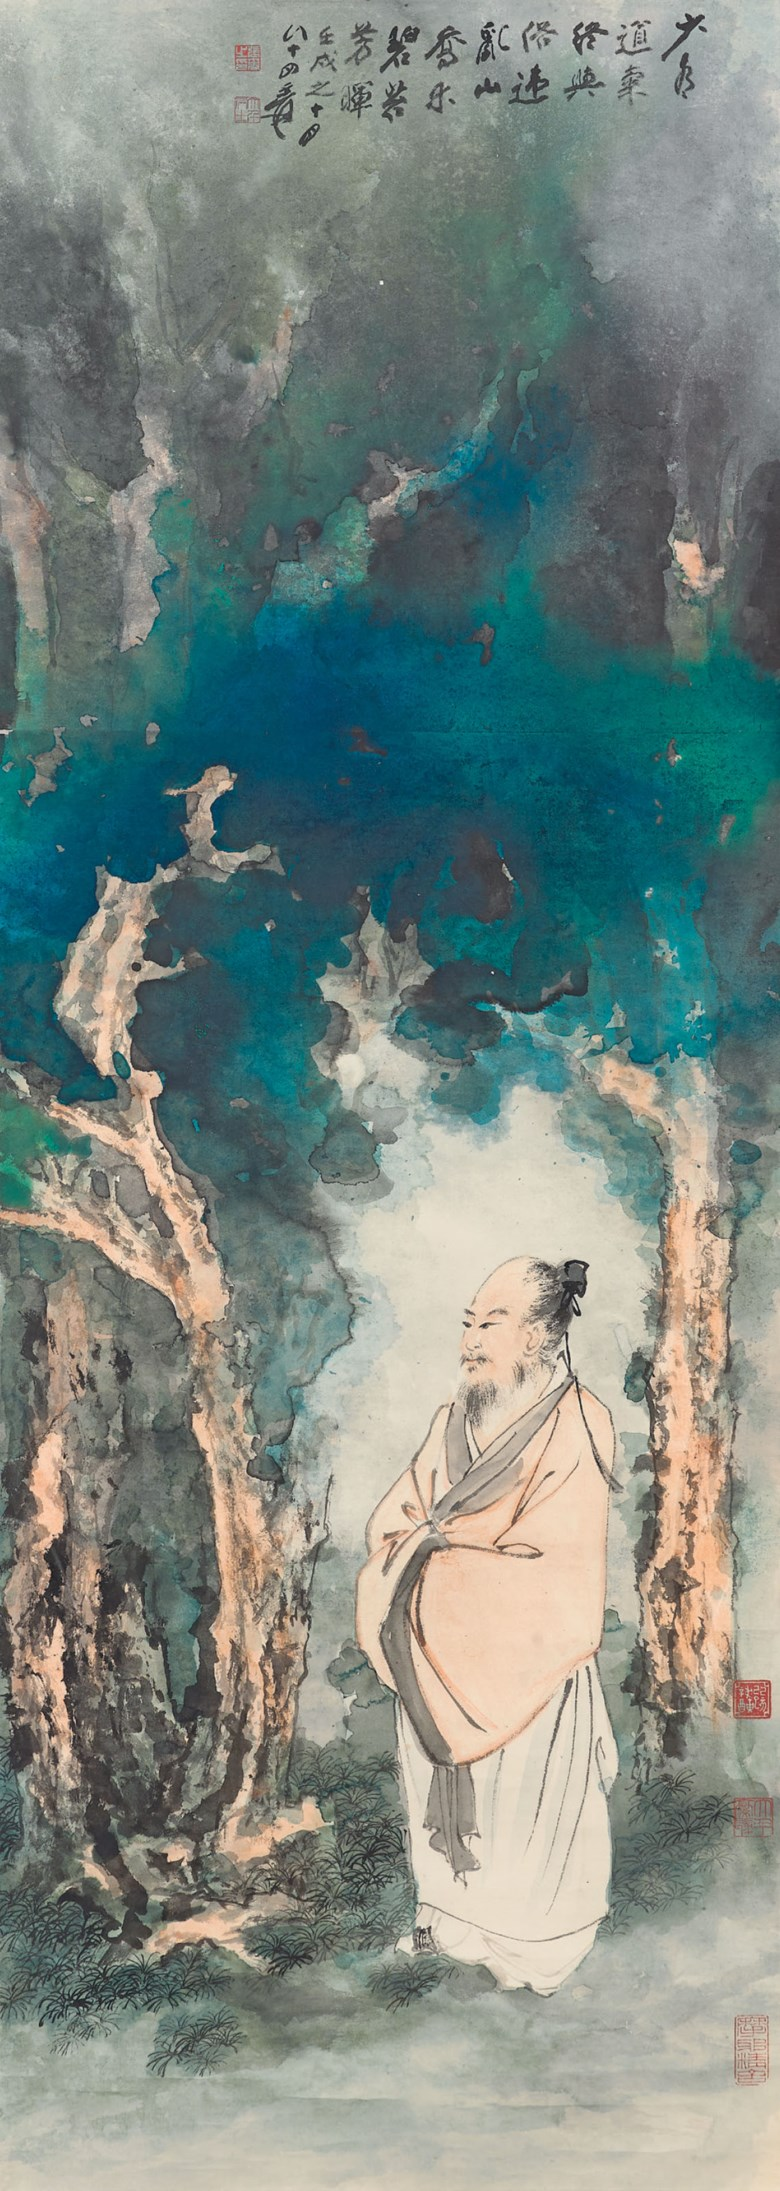 Zhang Daqian (1899-1983), Lofty Scholar by Lush Trees, 1982. Scroll, mounted and framed, ink and colour on paper. 177 x 61 cm (69⅝ x 24 in). Estimate HK$18,000,000-26,000,000. Offered in Fine Chinese Modern Paintings on 29 May at Christie's Hong Kong